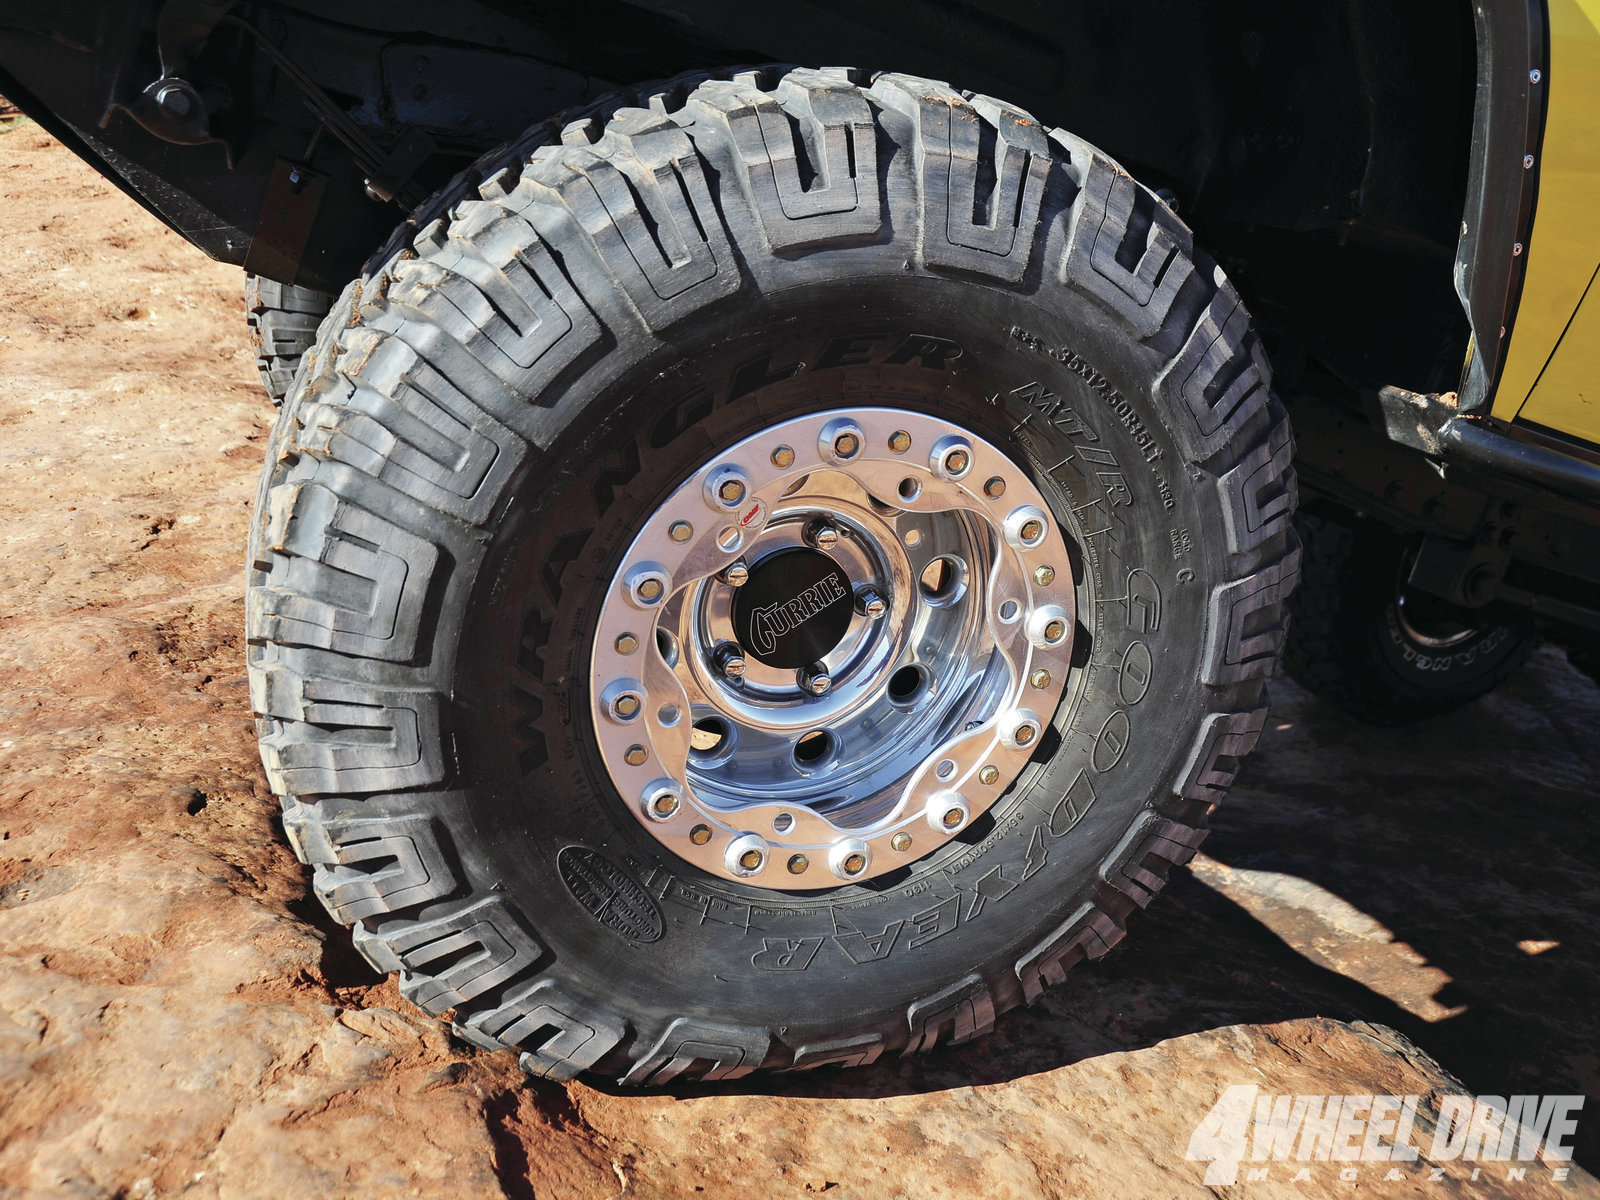 Ford Bronco wheels #2